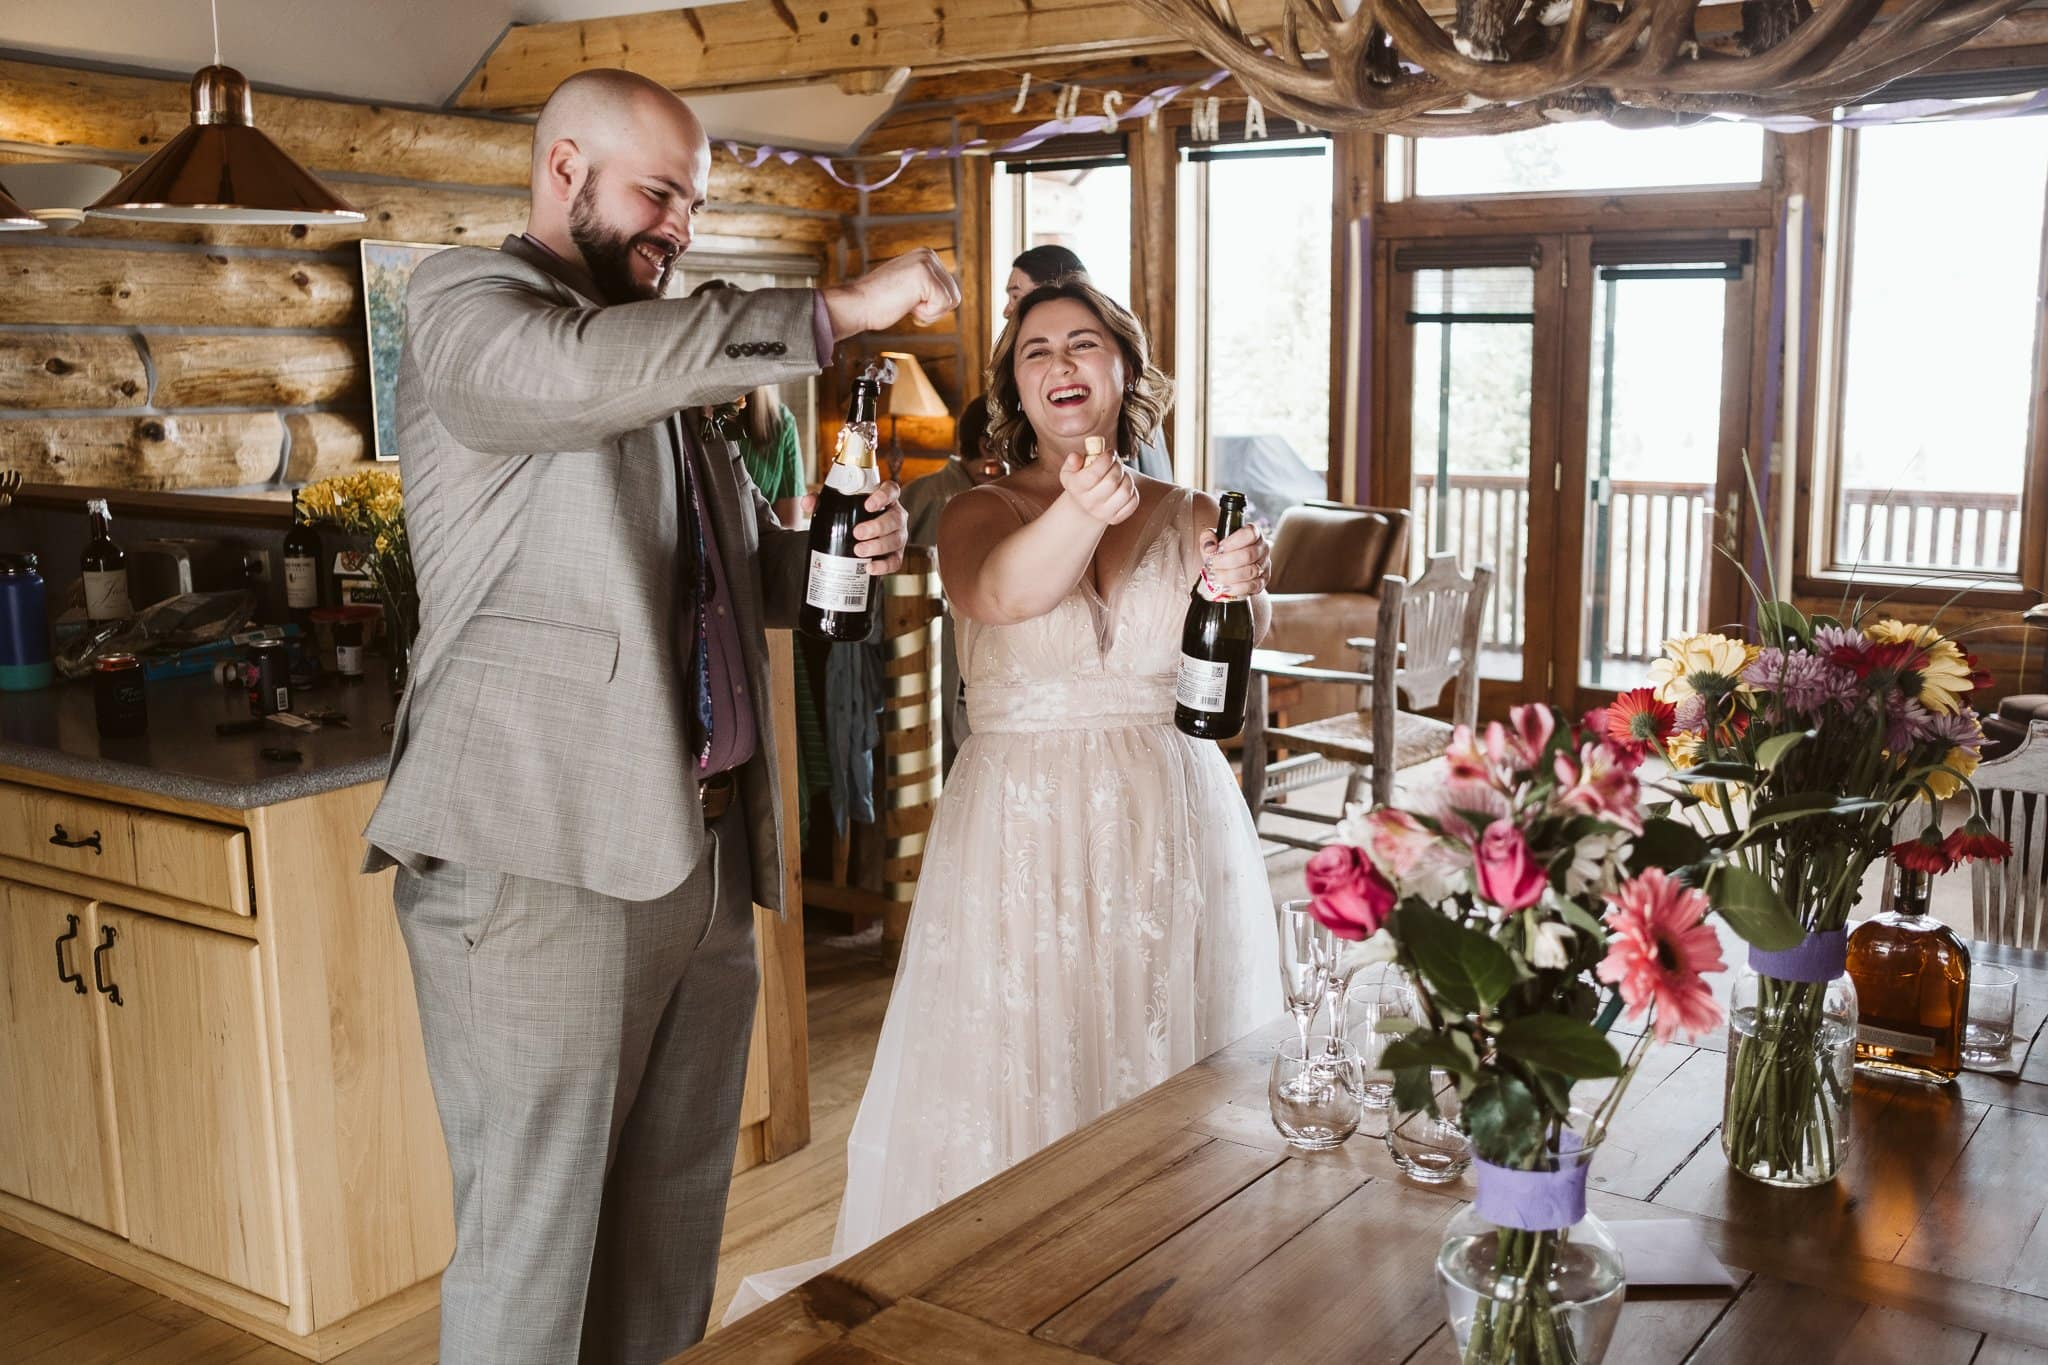 Bride and groom popping bottles of champagne for toasts